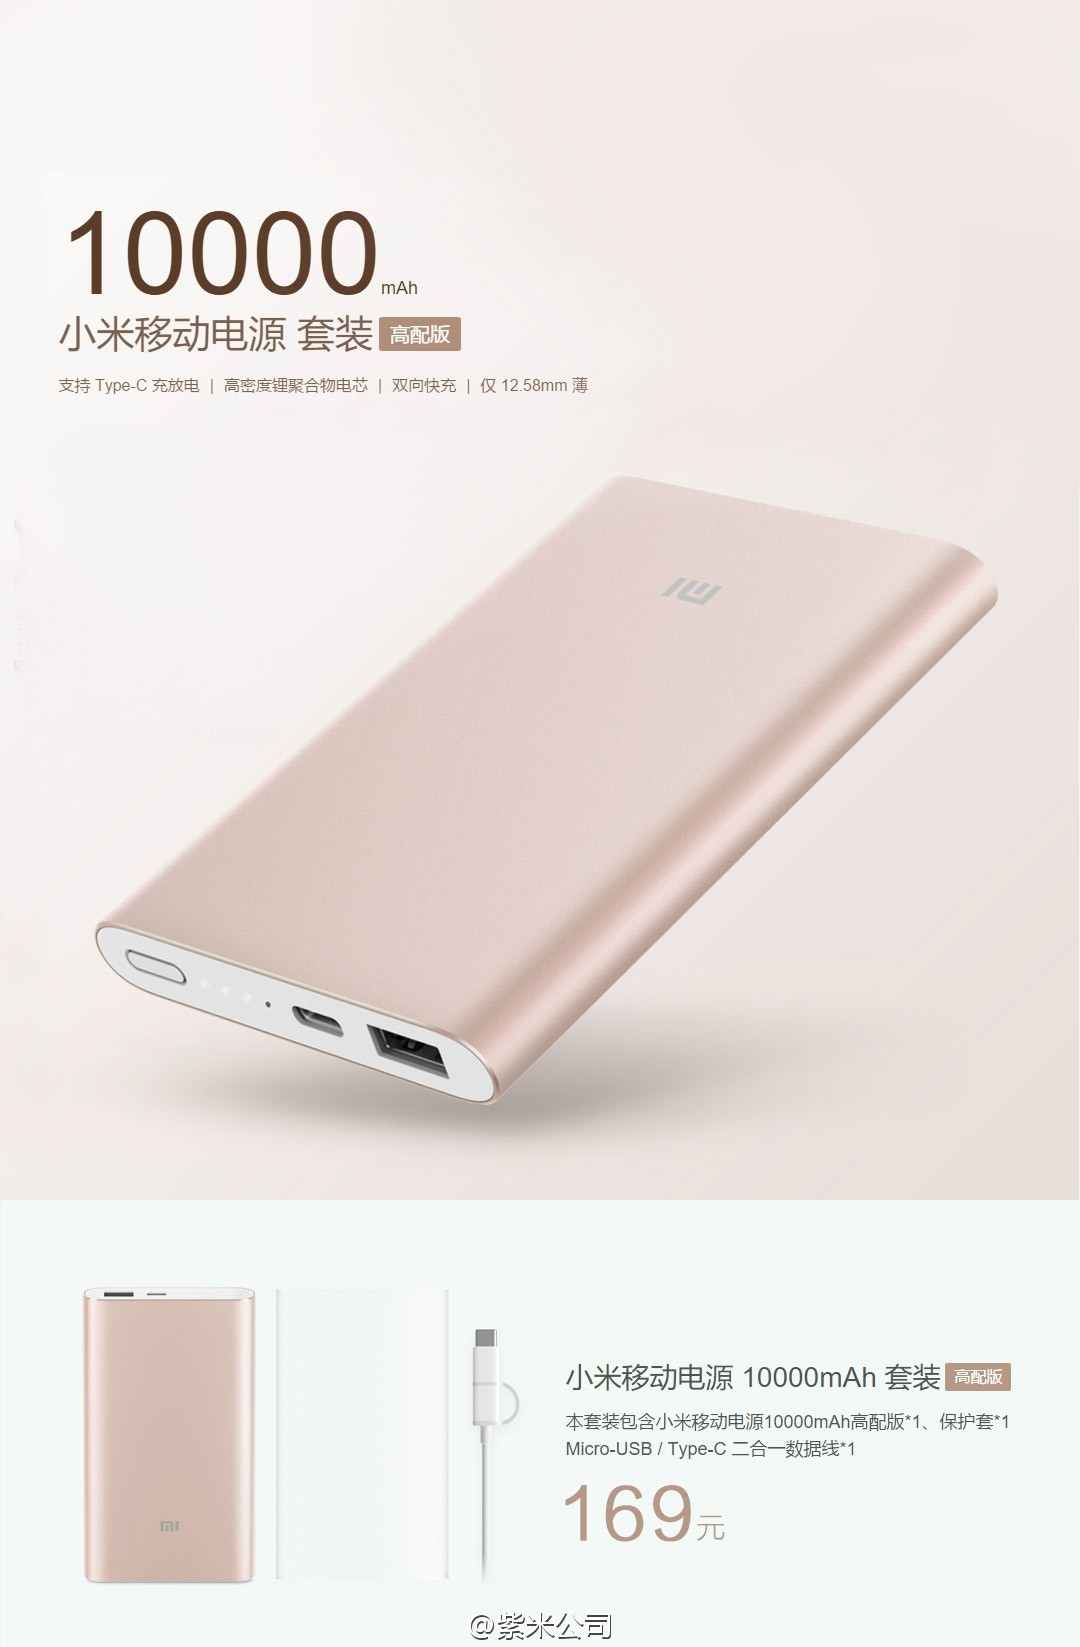 xiaomi-powerbank-bundle